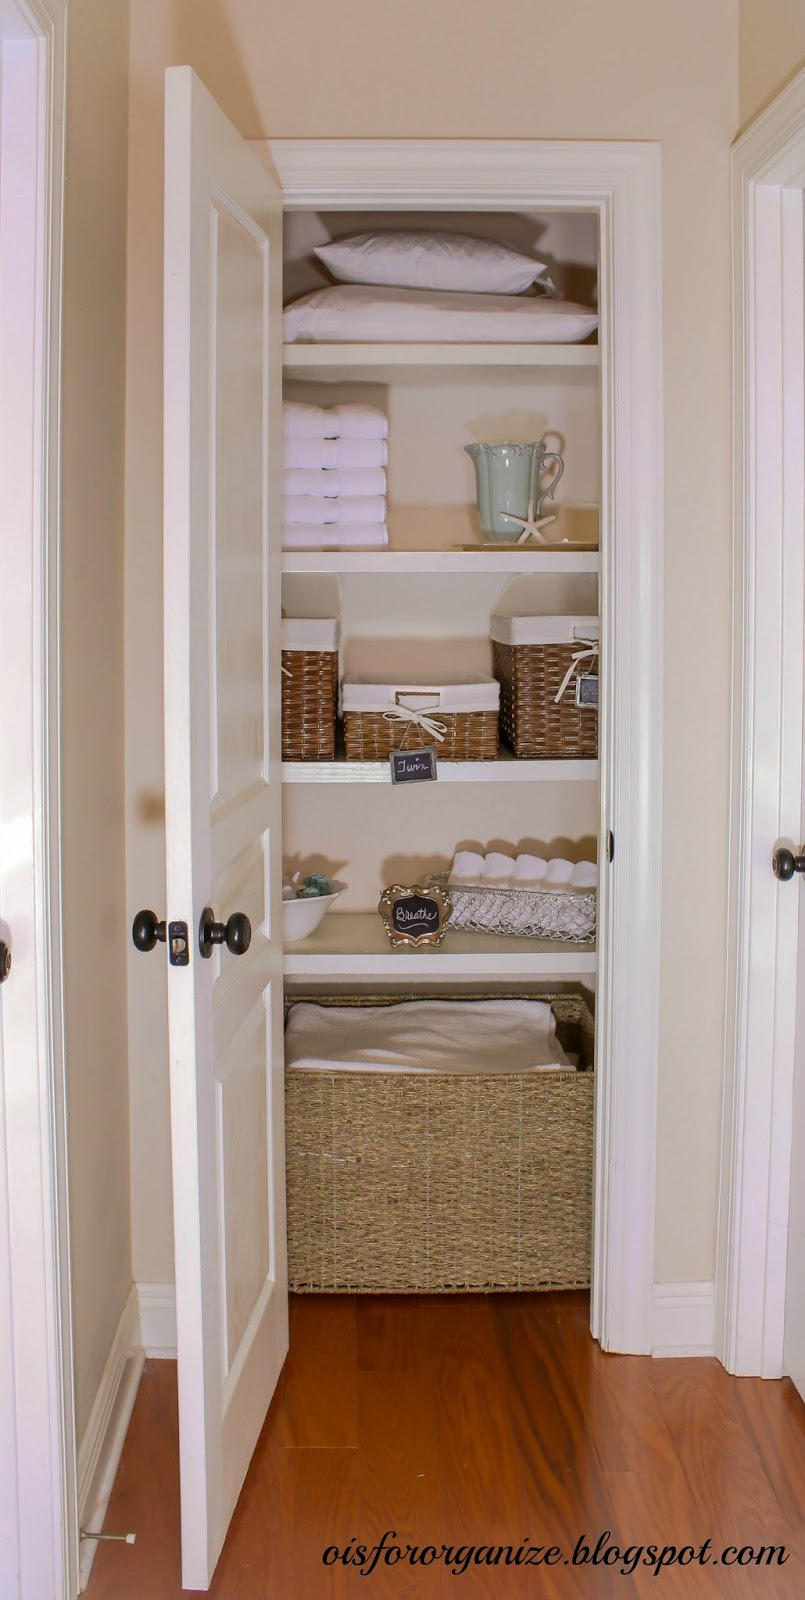 bathroom closet shelving ideas o is for organize linen closet reveal 15813